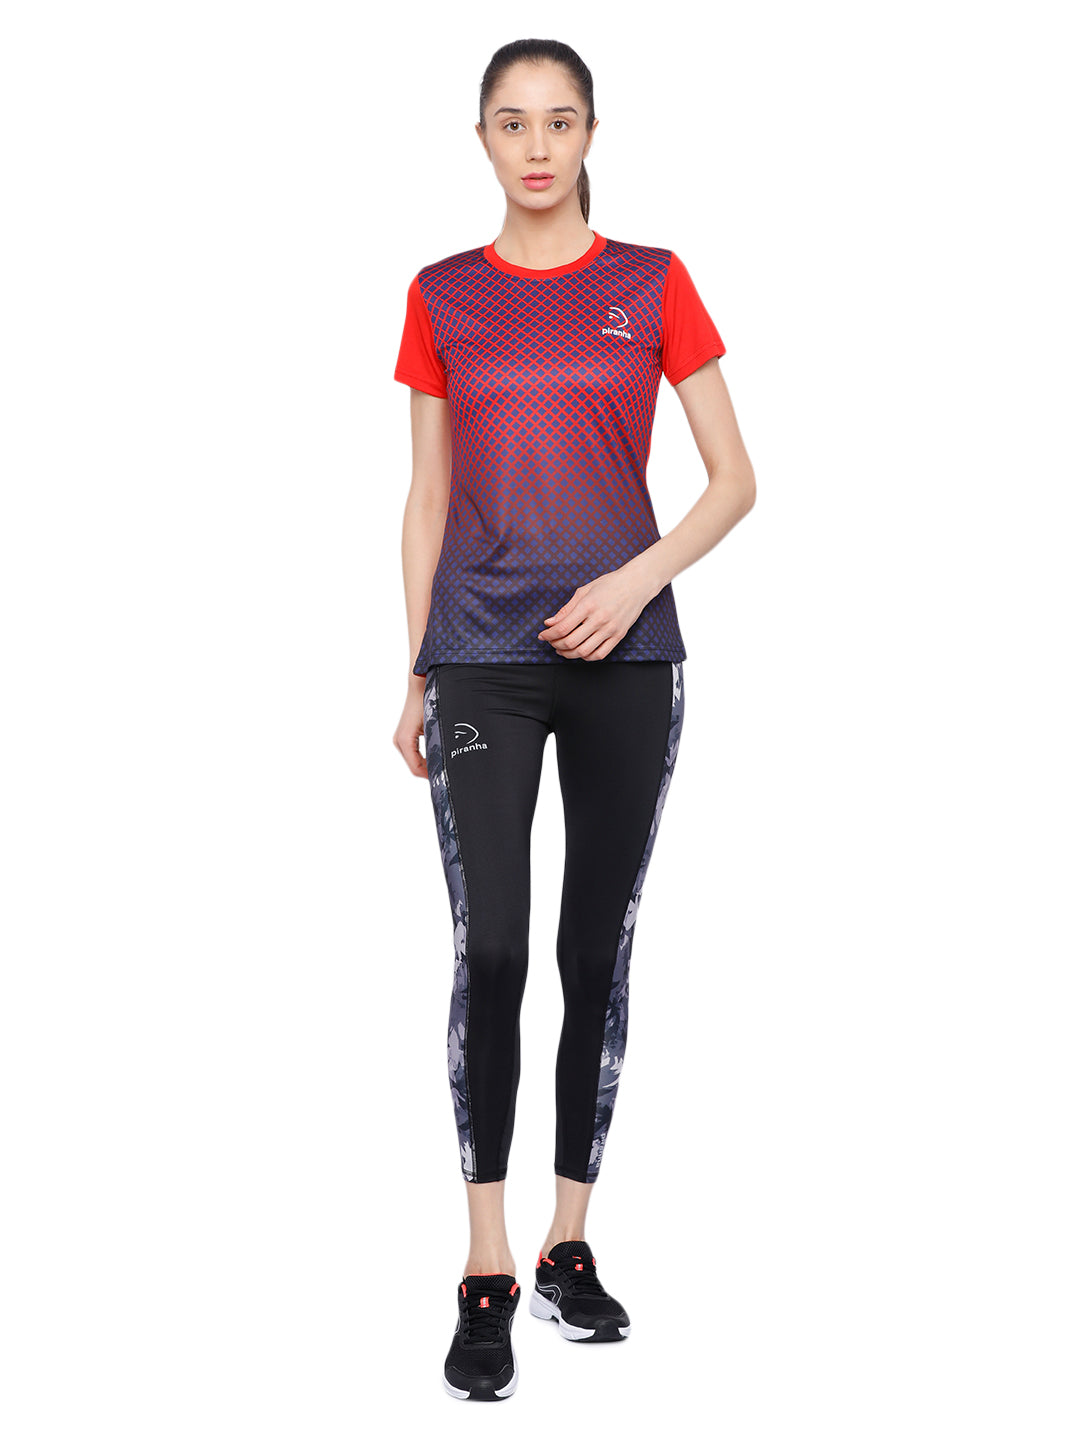 Piranha Women's Red T-shirt TSG153C